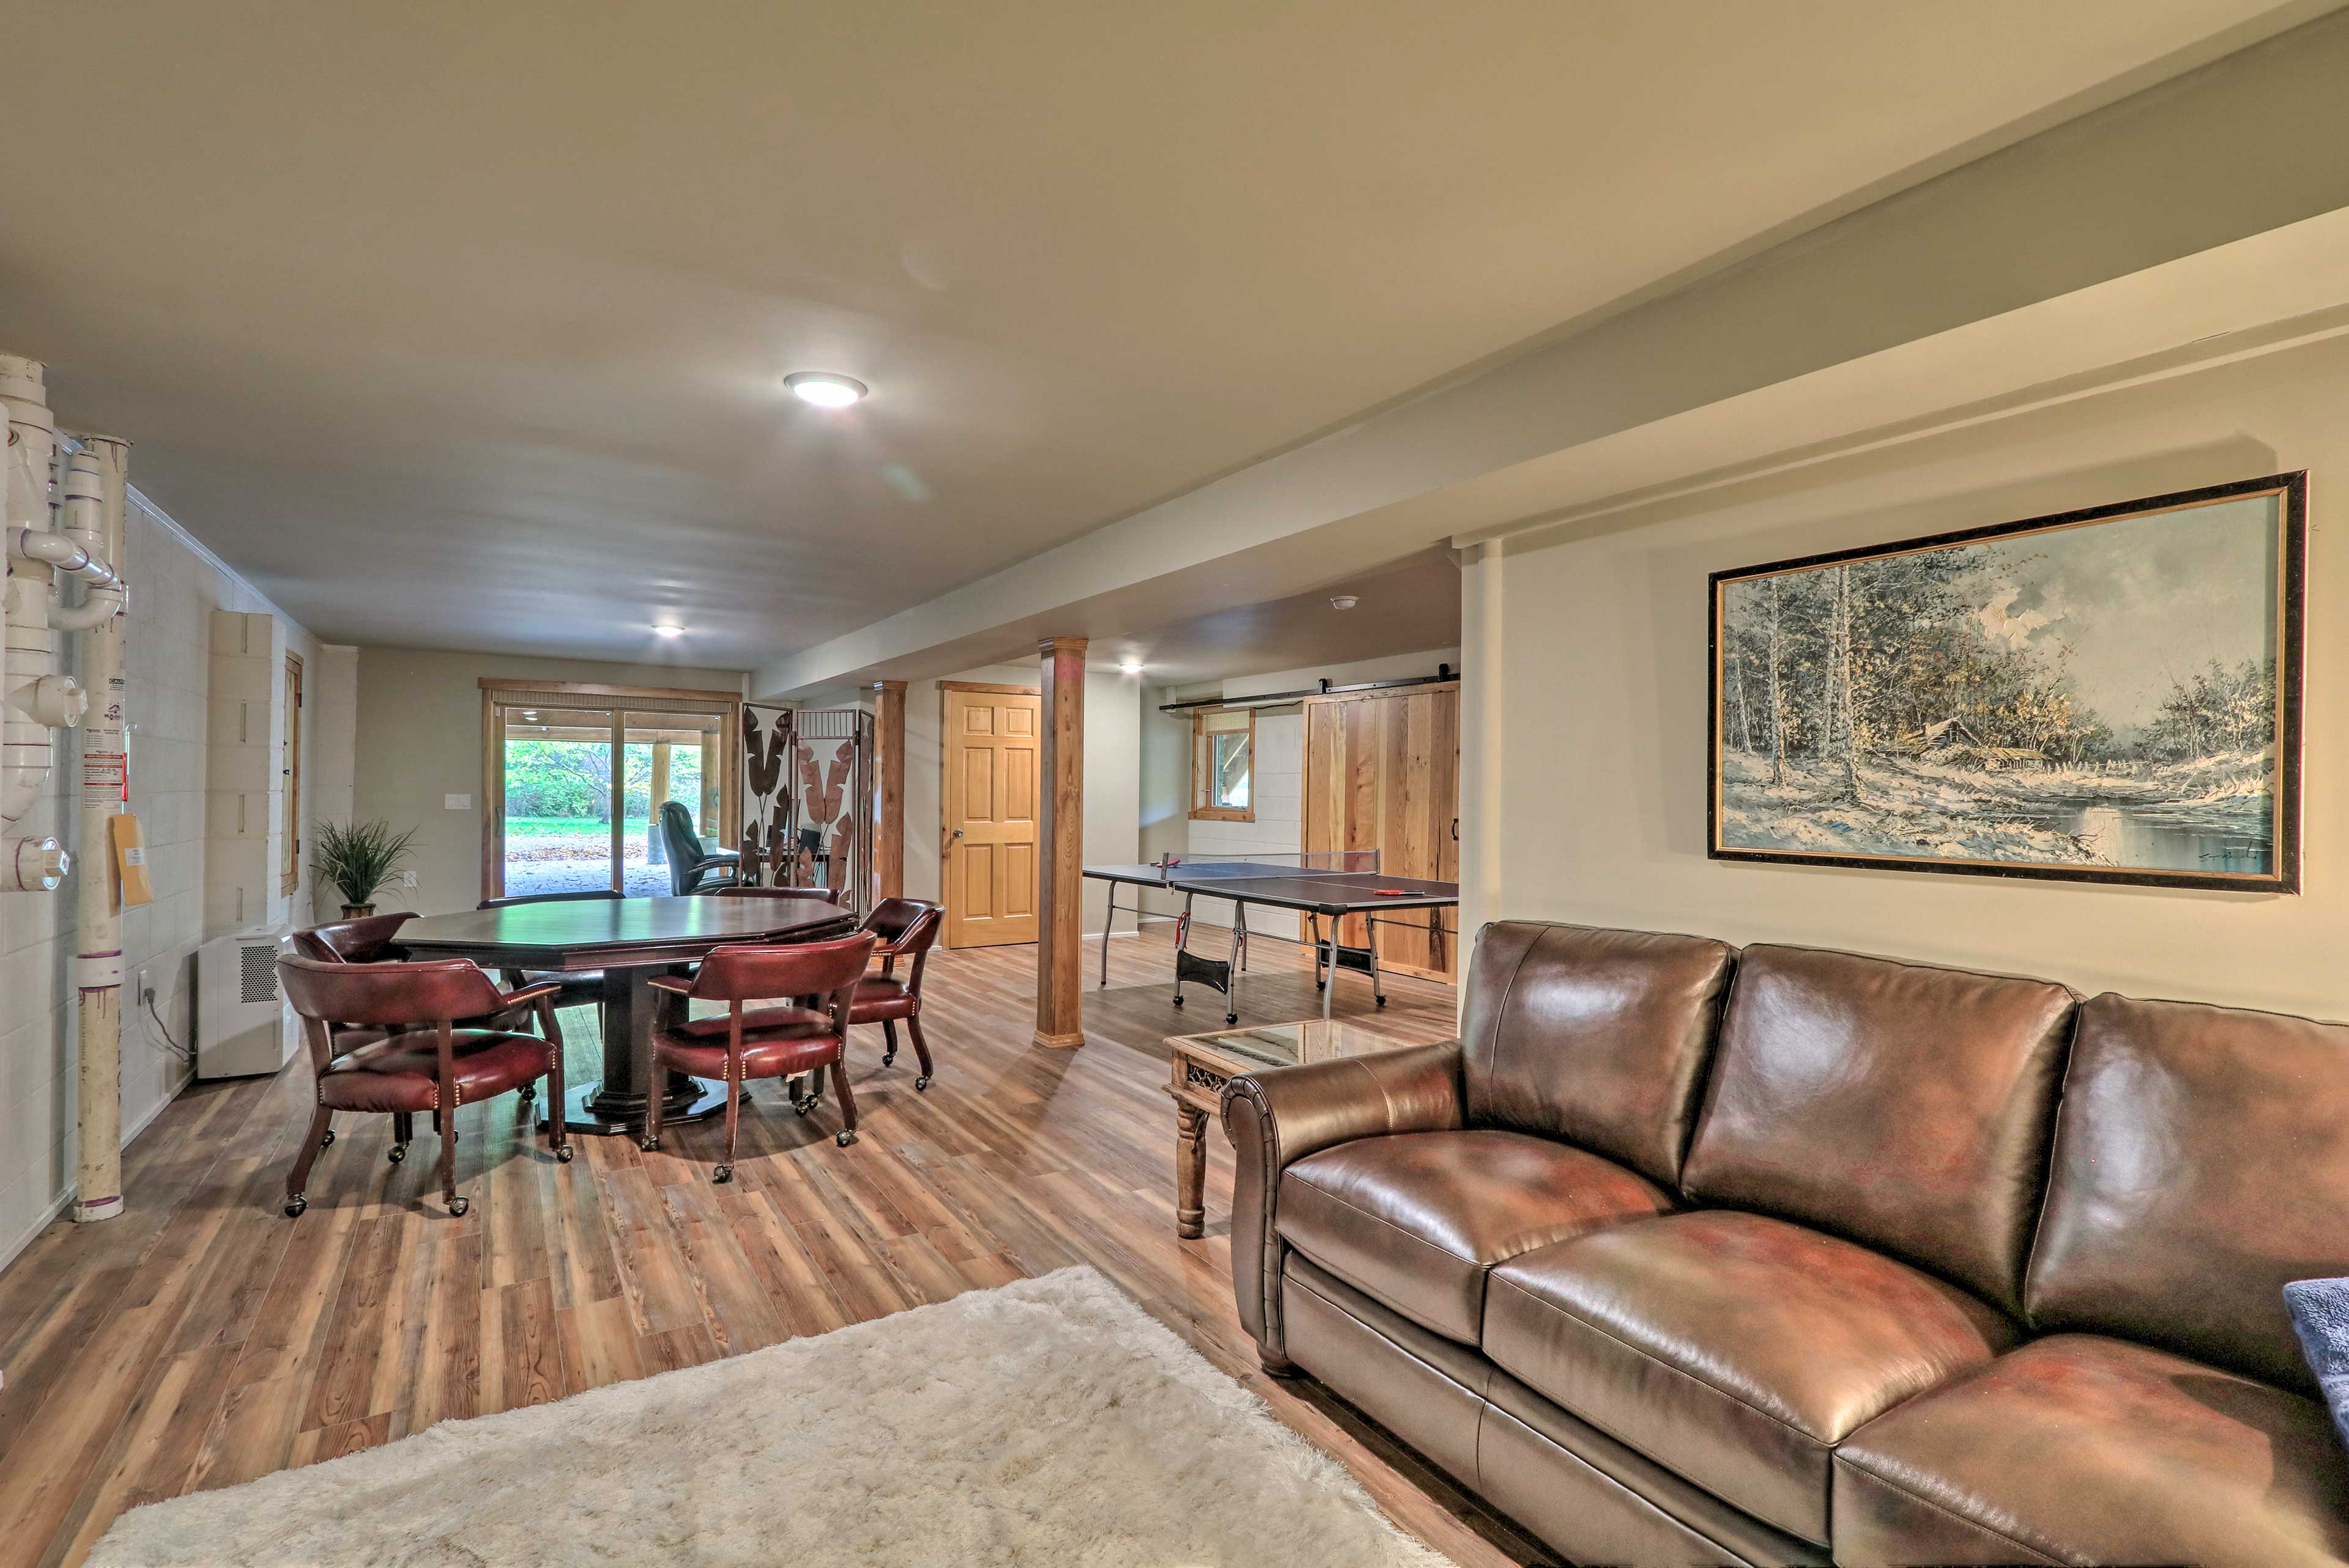 Downstairs, you'll find a game room!